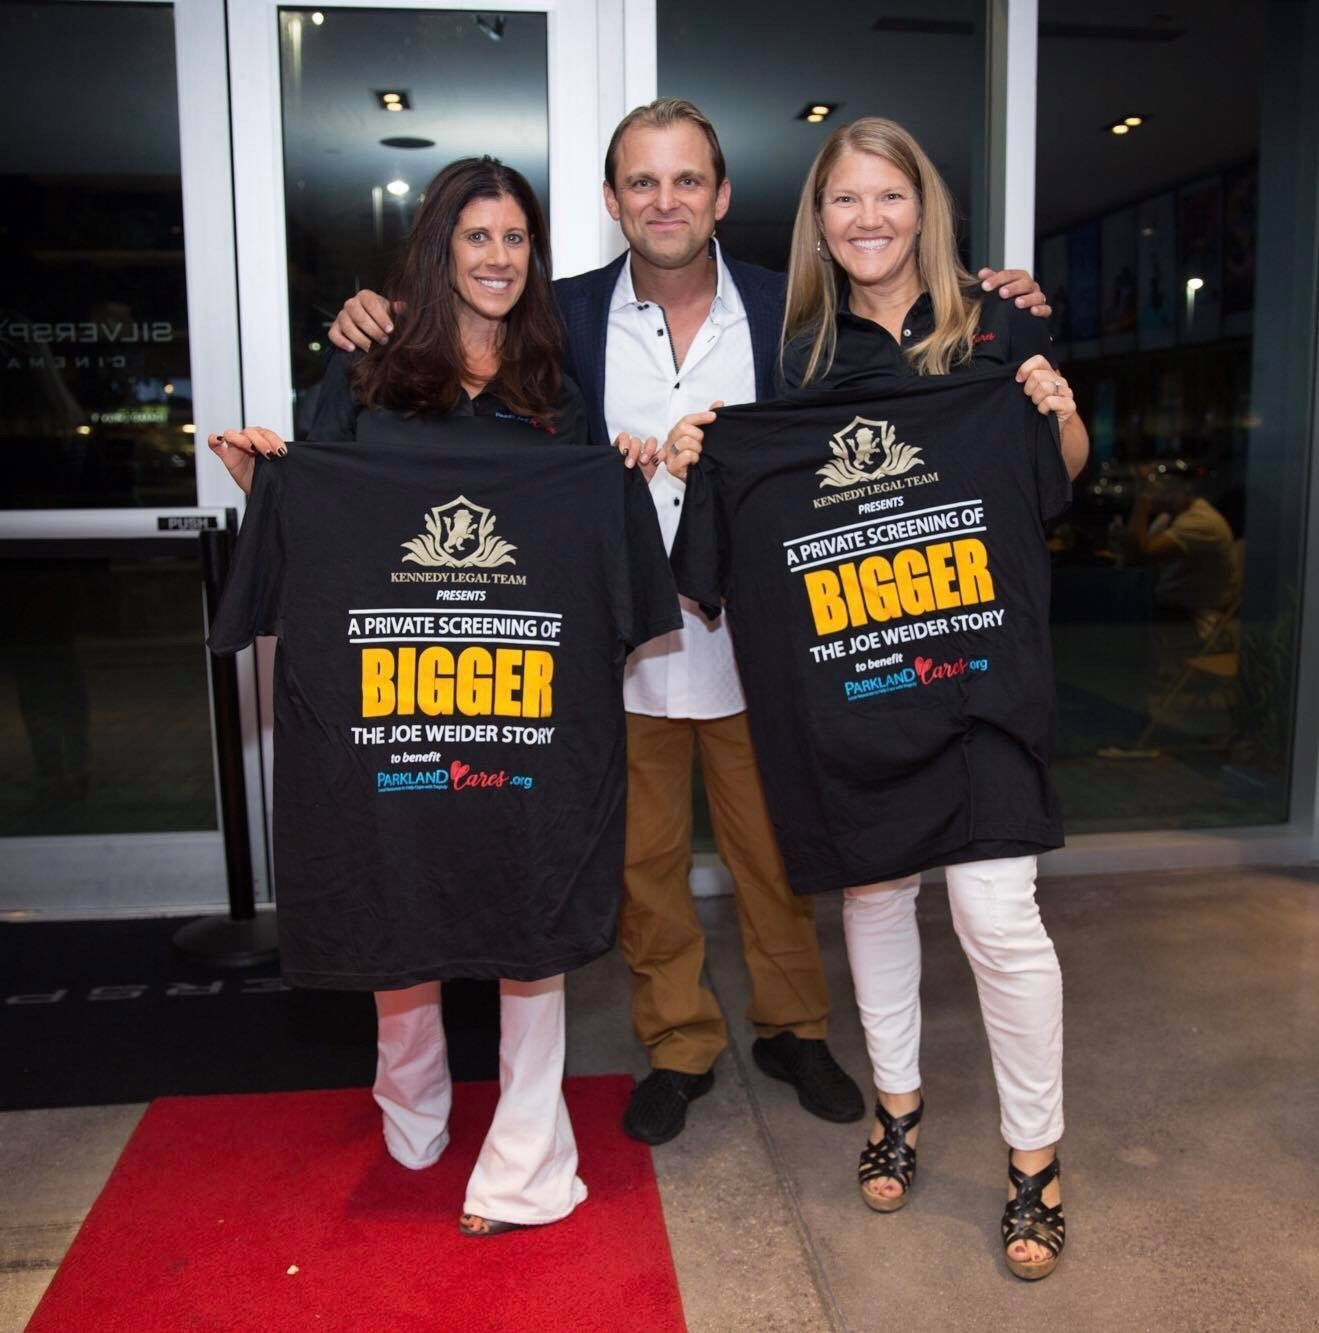 Pam and Stacy holding up BIGGER event T-shirts with Dan Solomon